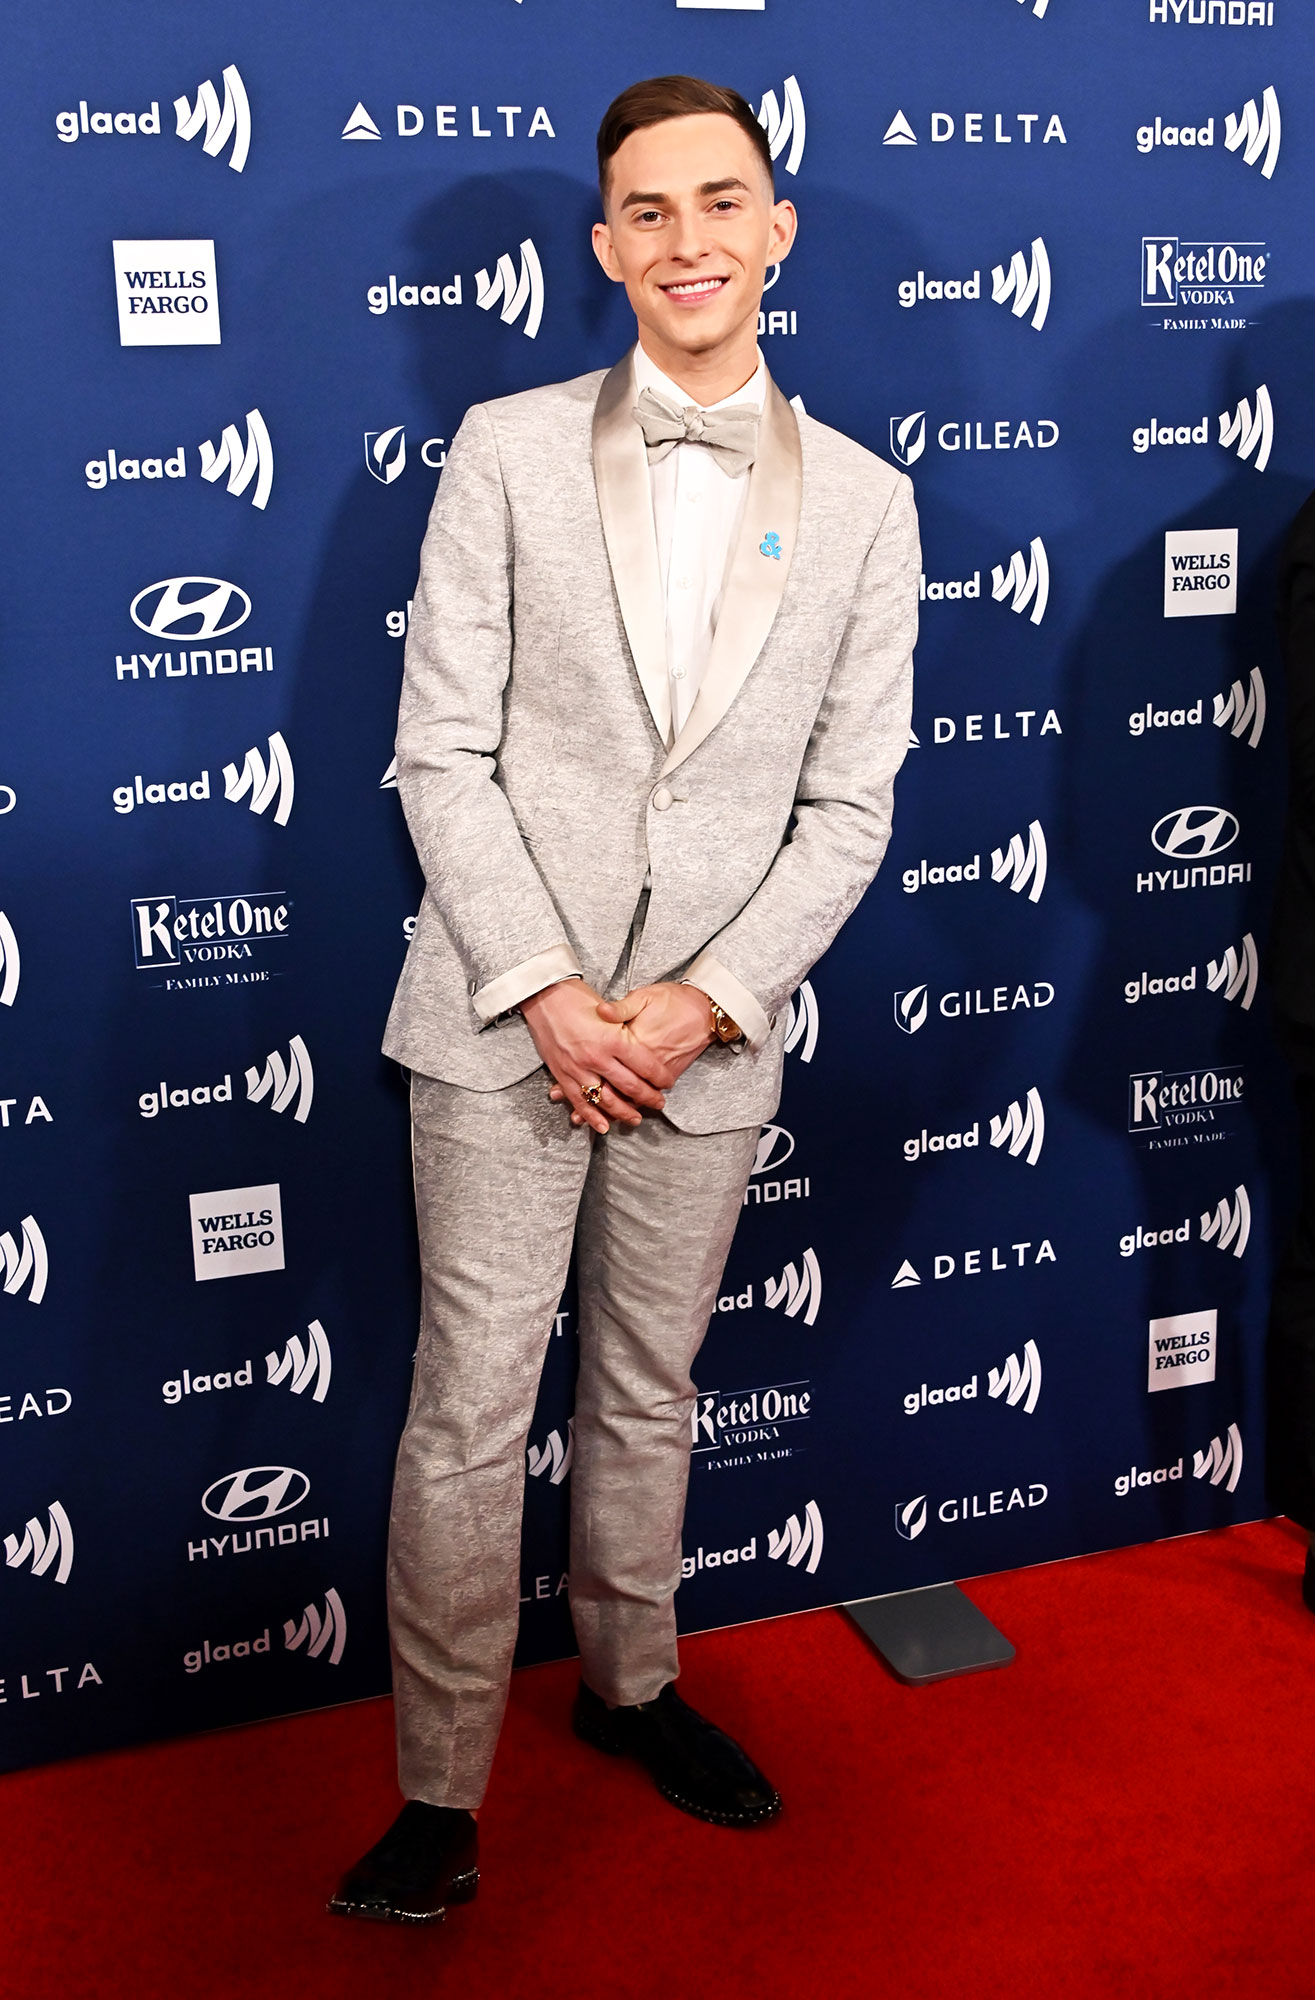 See the Stars at the GLAAD Awards - Wearing a heather grey tux with silver lapels.